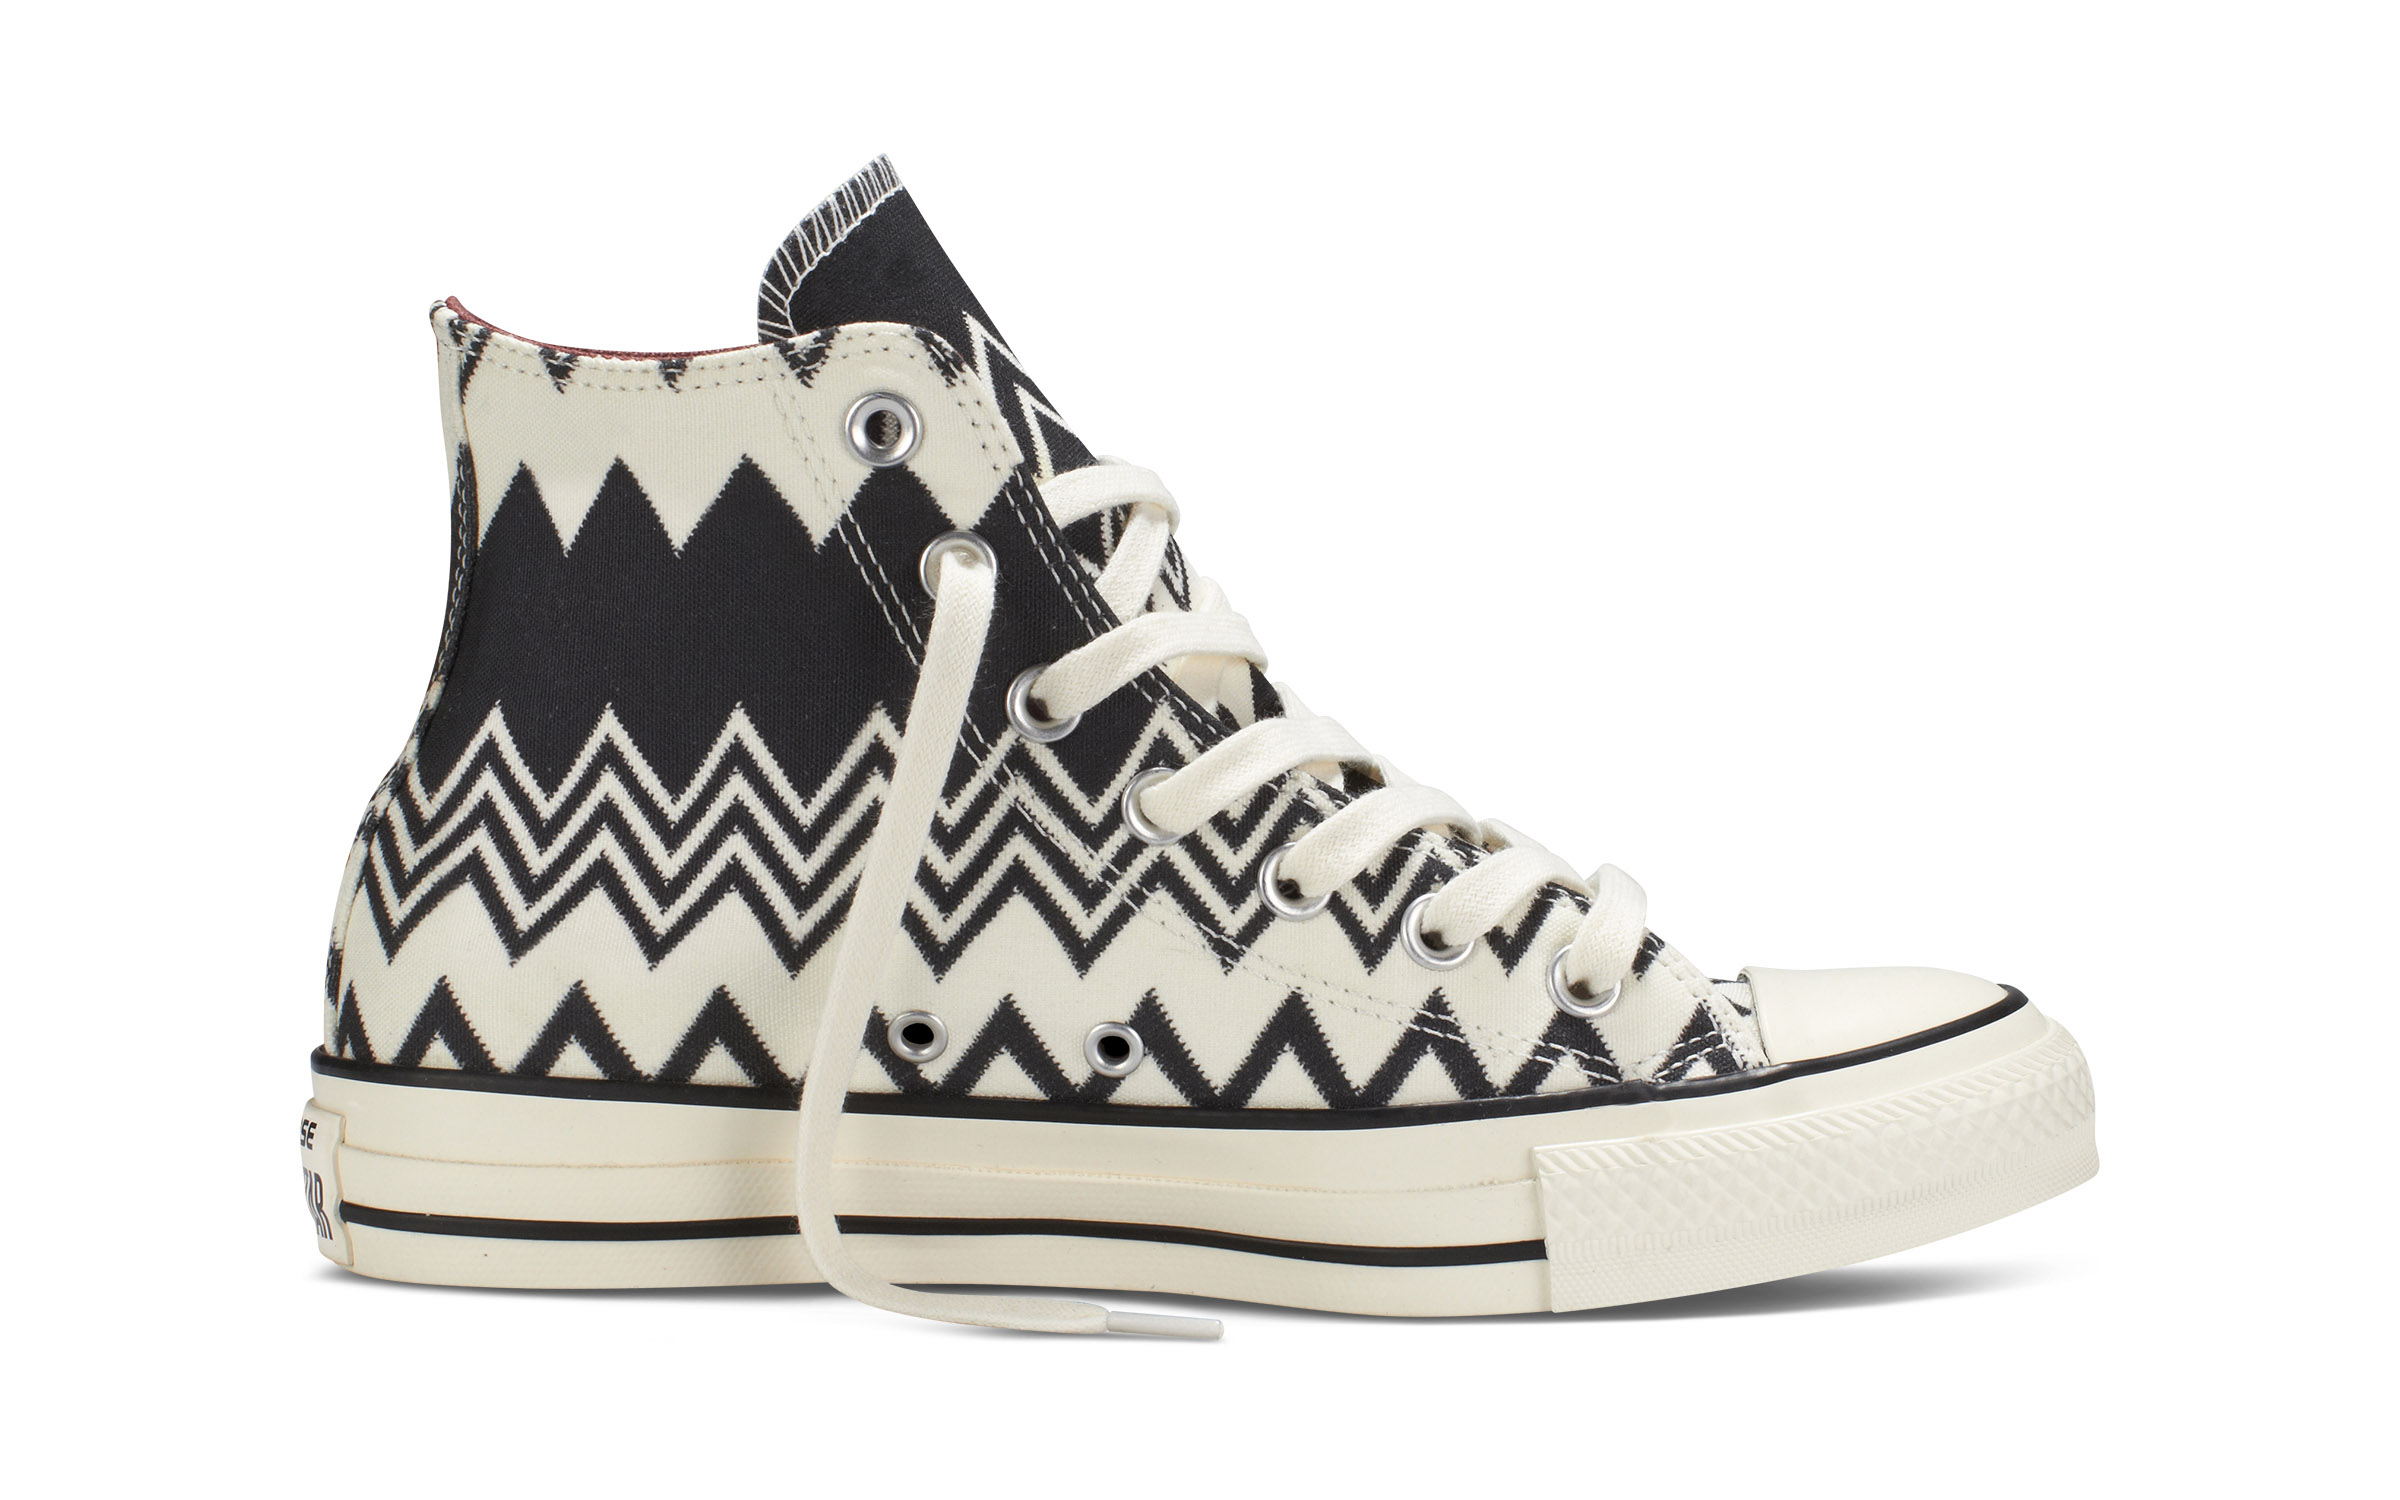 converse x missoni chuck taylor all star fall 2014 collection so sasha. Black Bedroom Furniture Sets. Home Design Ideas